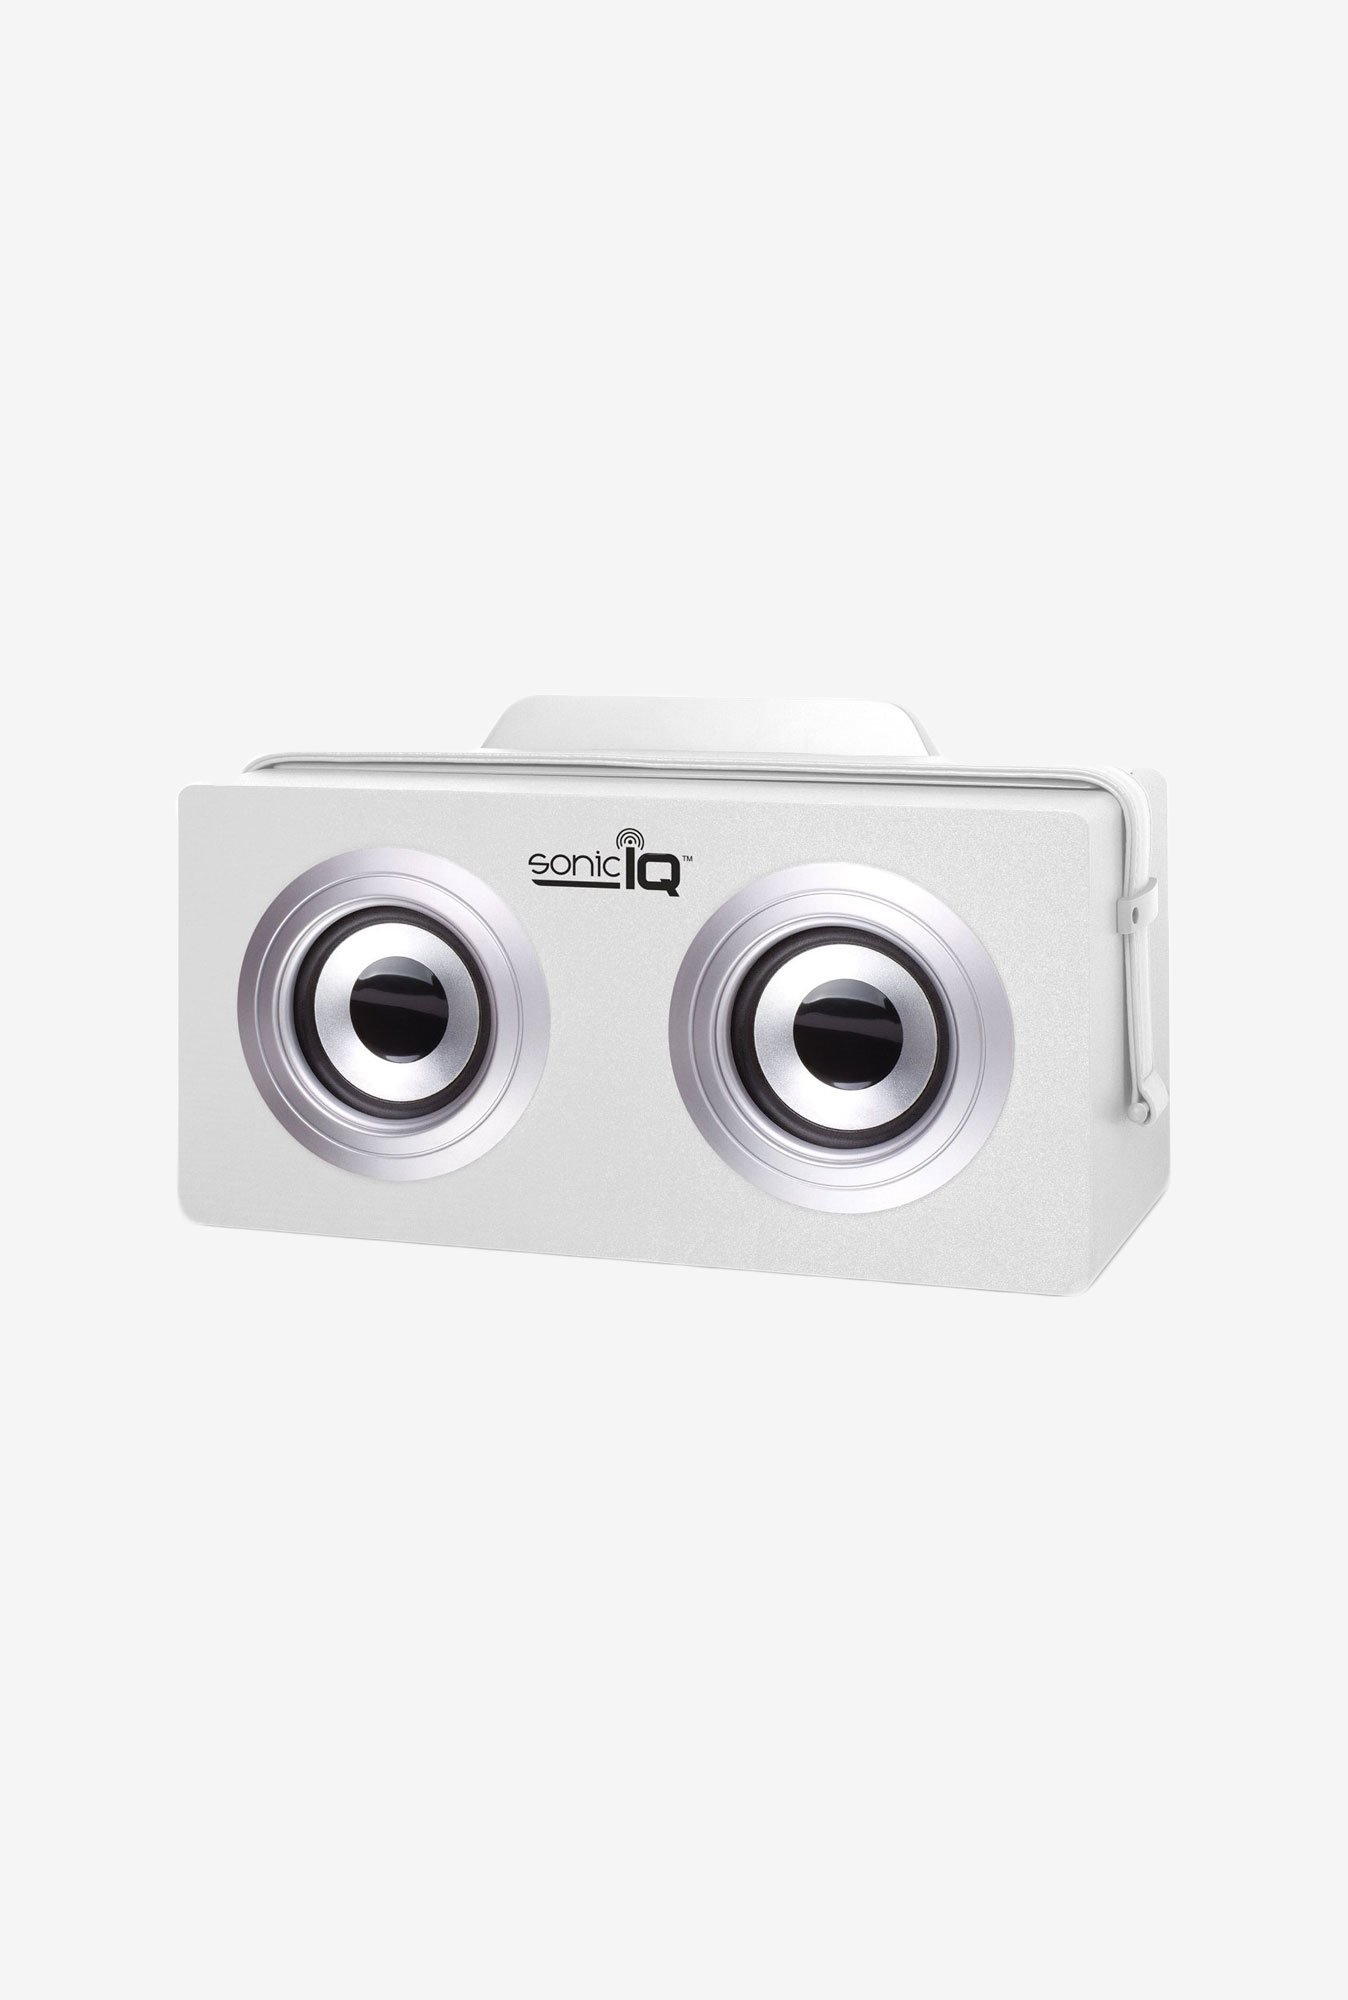 Perfect Life Ideas 5220 Bluetooth Boombox Speaker (White)